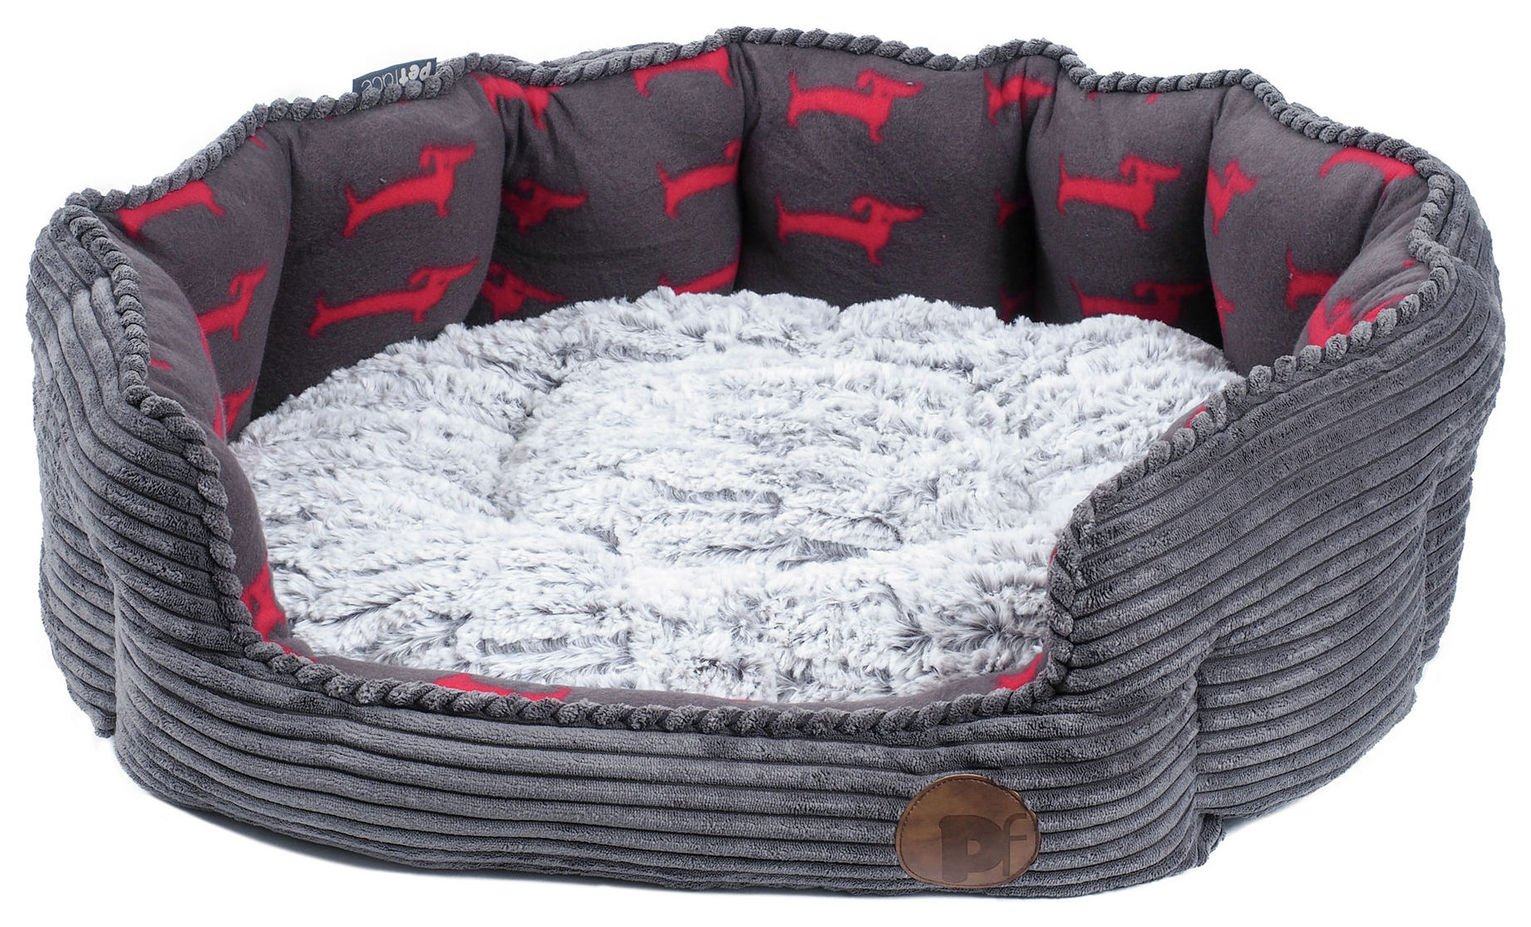 Petface Grey Bamboo & Jumbo Cord Deli Dog Bed - Small